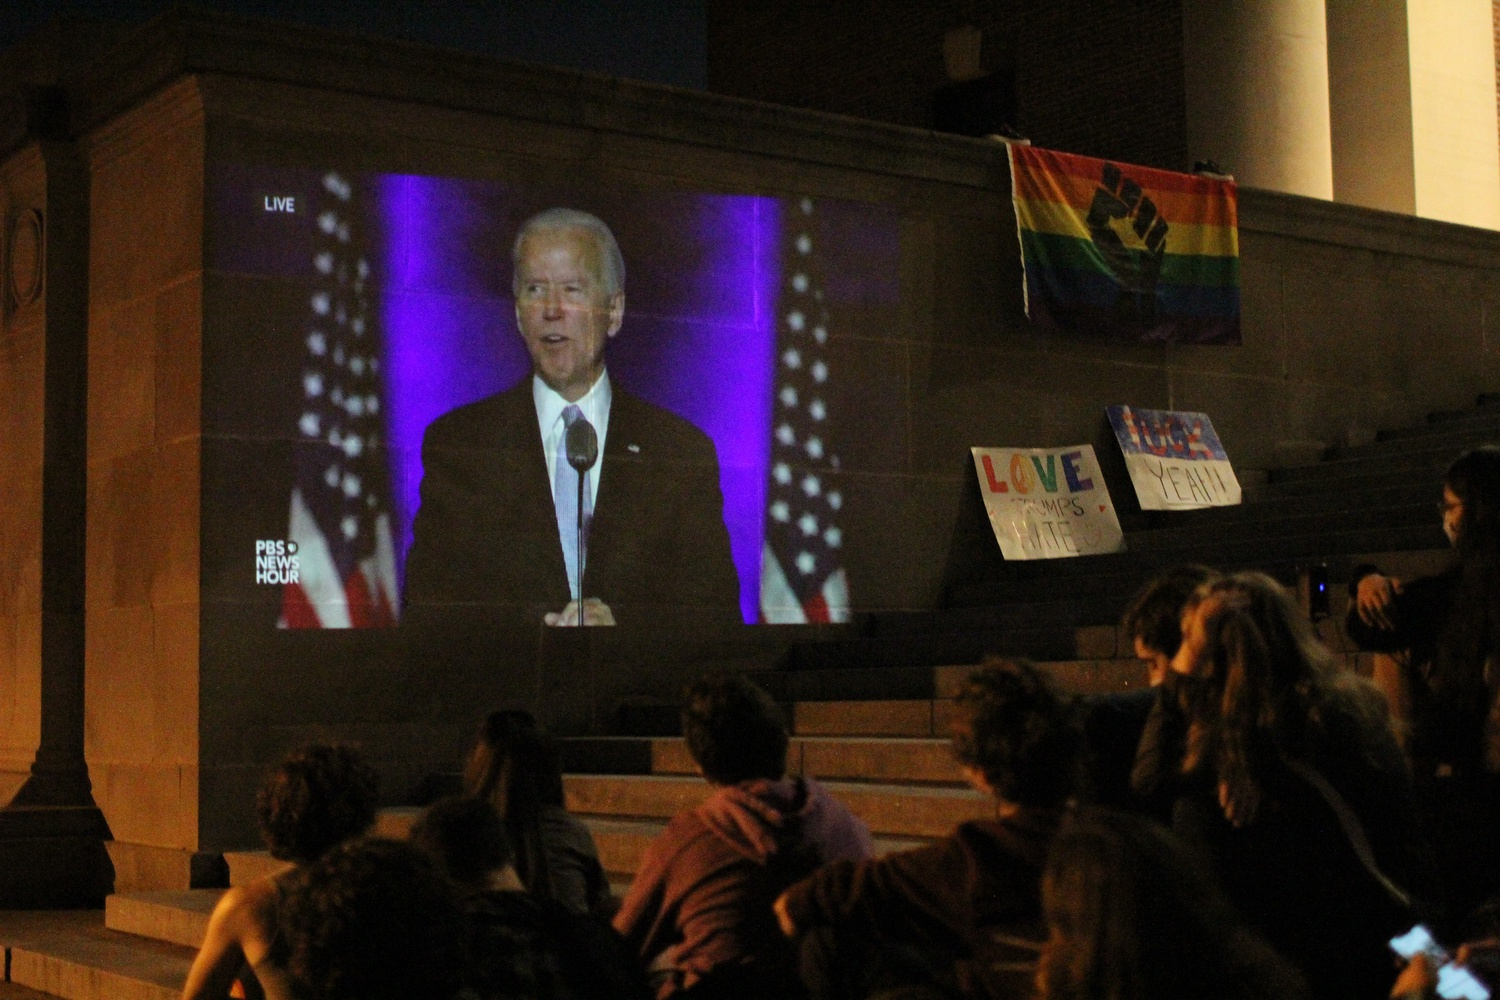 Harvard students living on campus watch former Vice President Joseph R. Biden Jr. deliver his acceptance speech from the steps of Widener Library